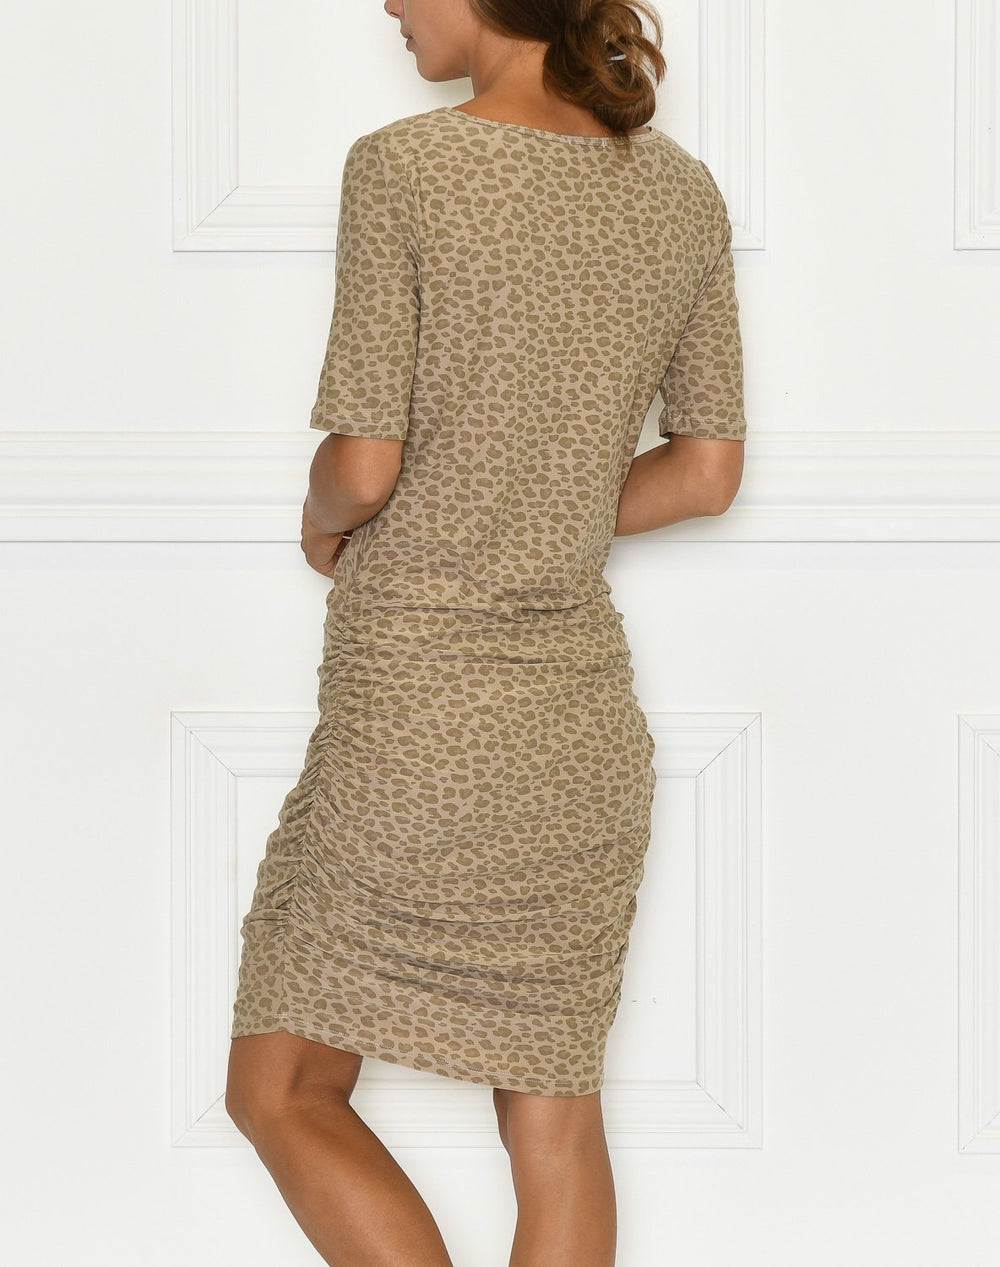 Liberté Alma dress 3 sand leo - Online-Mode